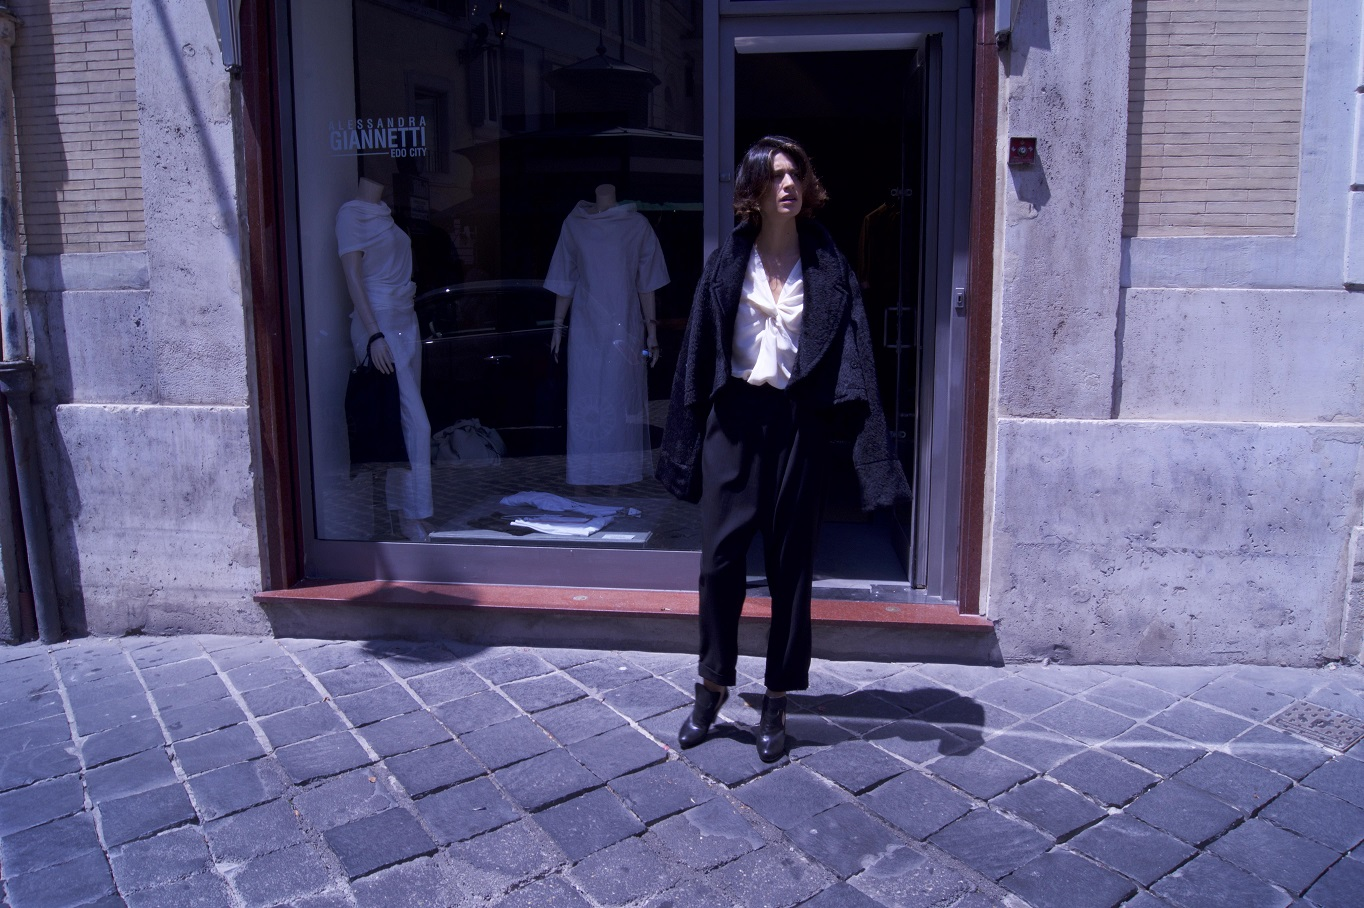 Clothing Store in Rome 2